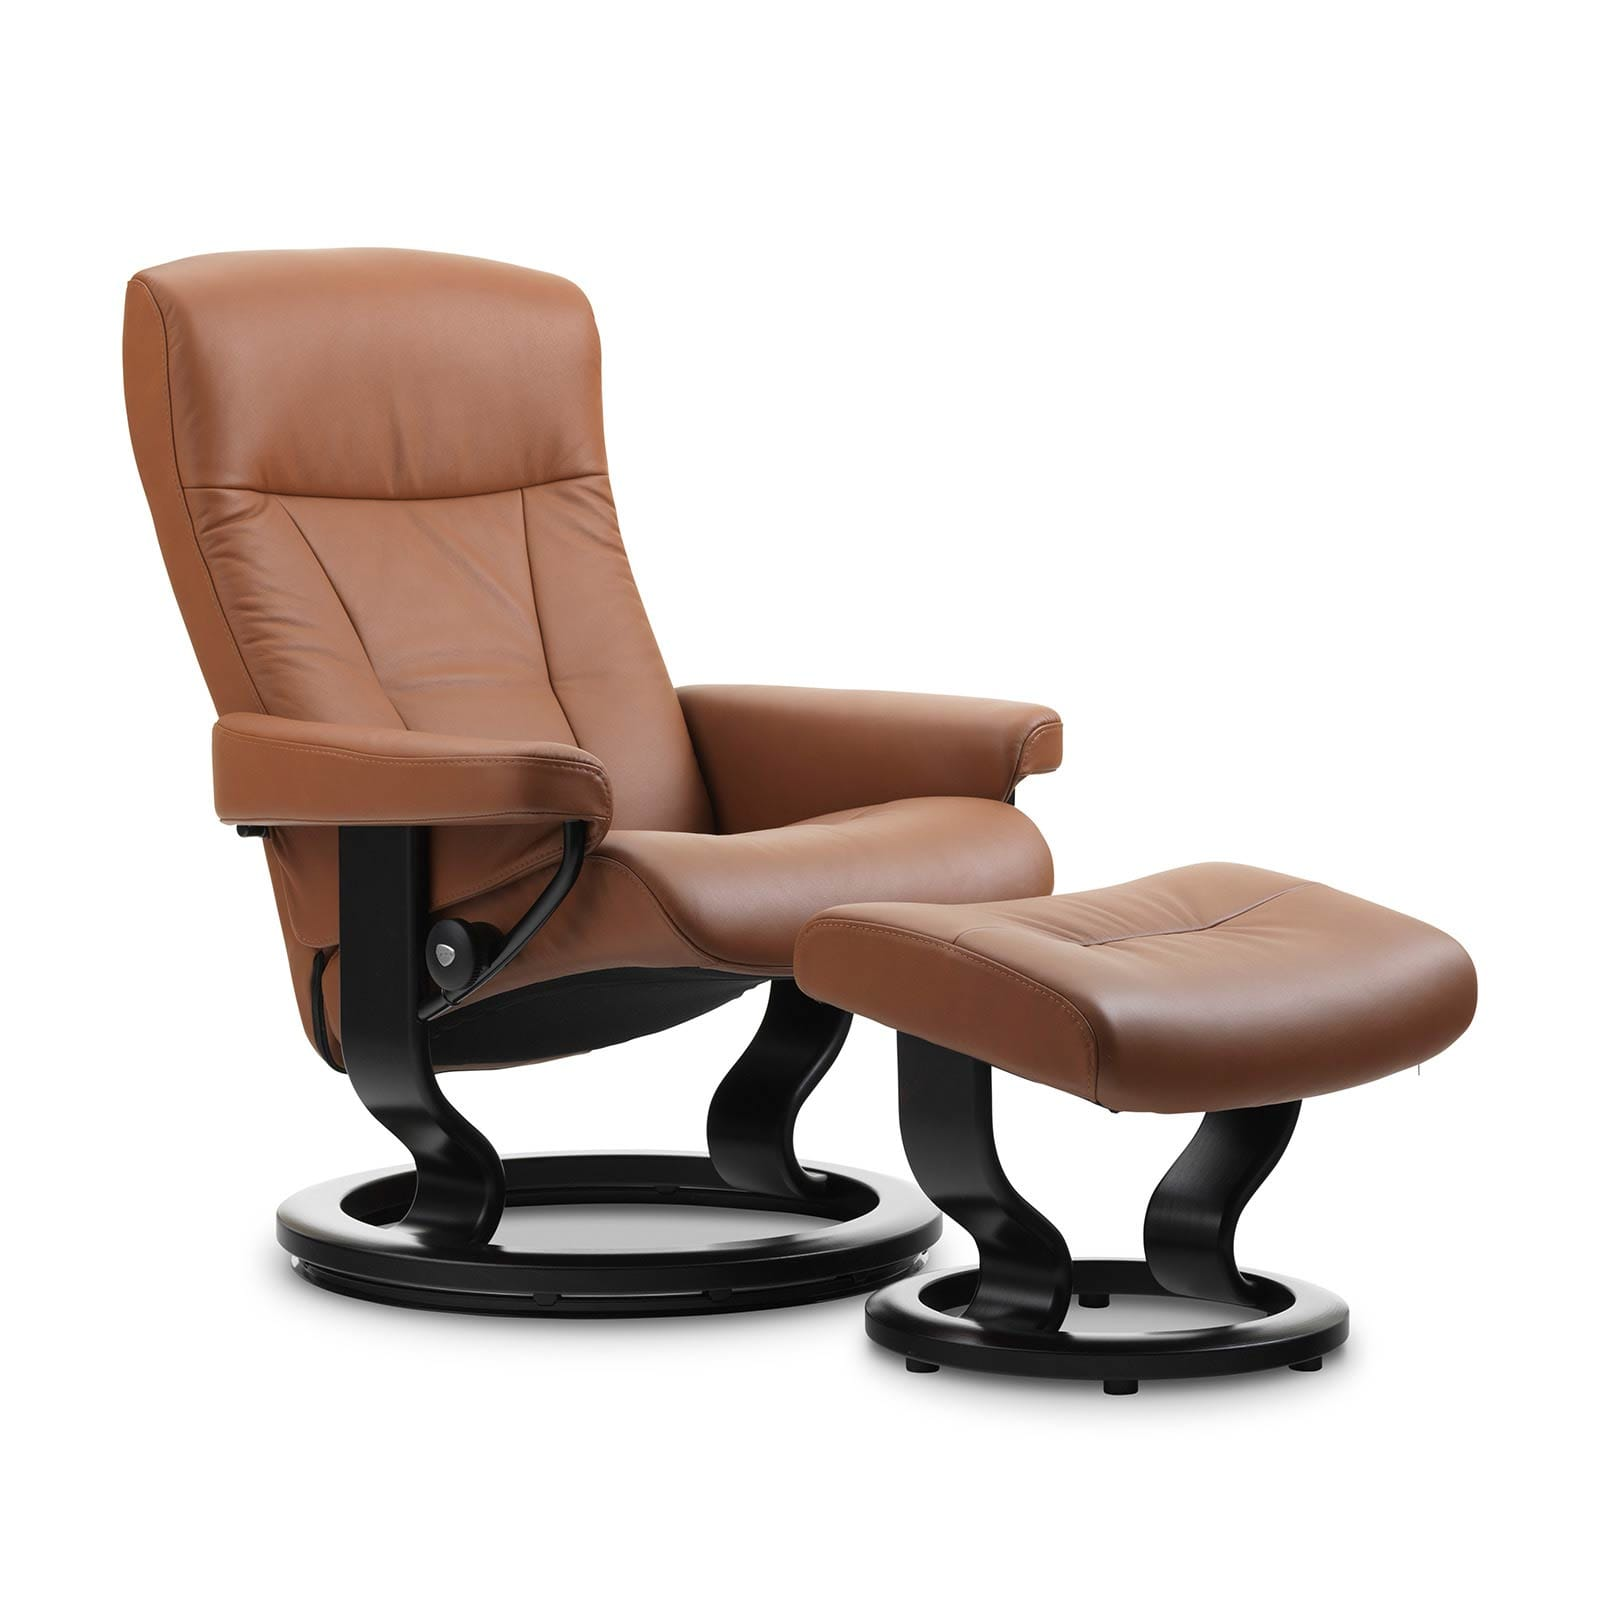 Stressless City Sessel Preis Stressless Sessel President Copper Paloma Classic Gestell Schwarz Mit Hocker